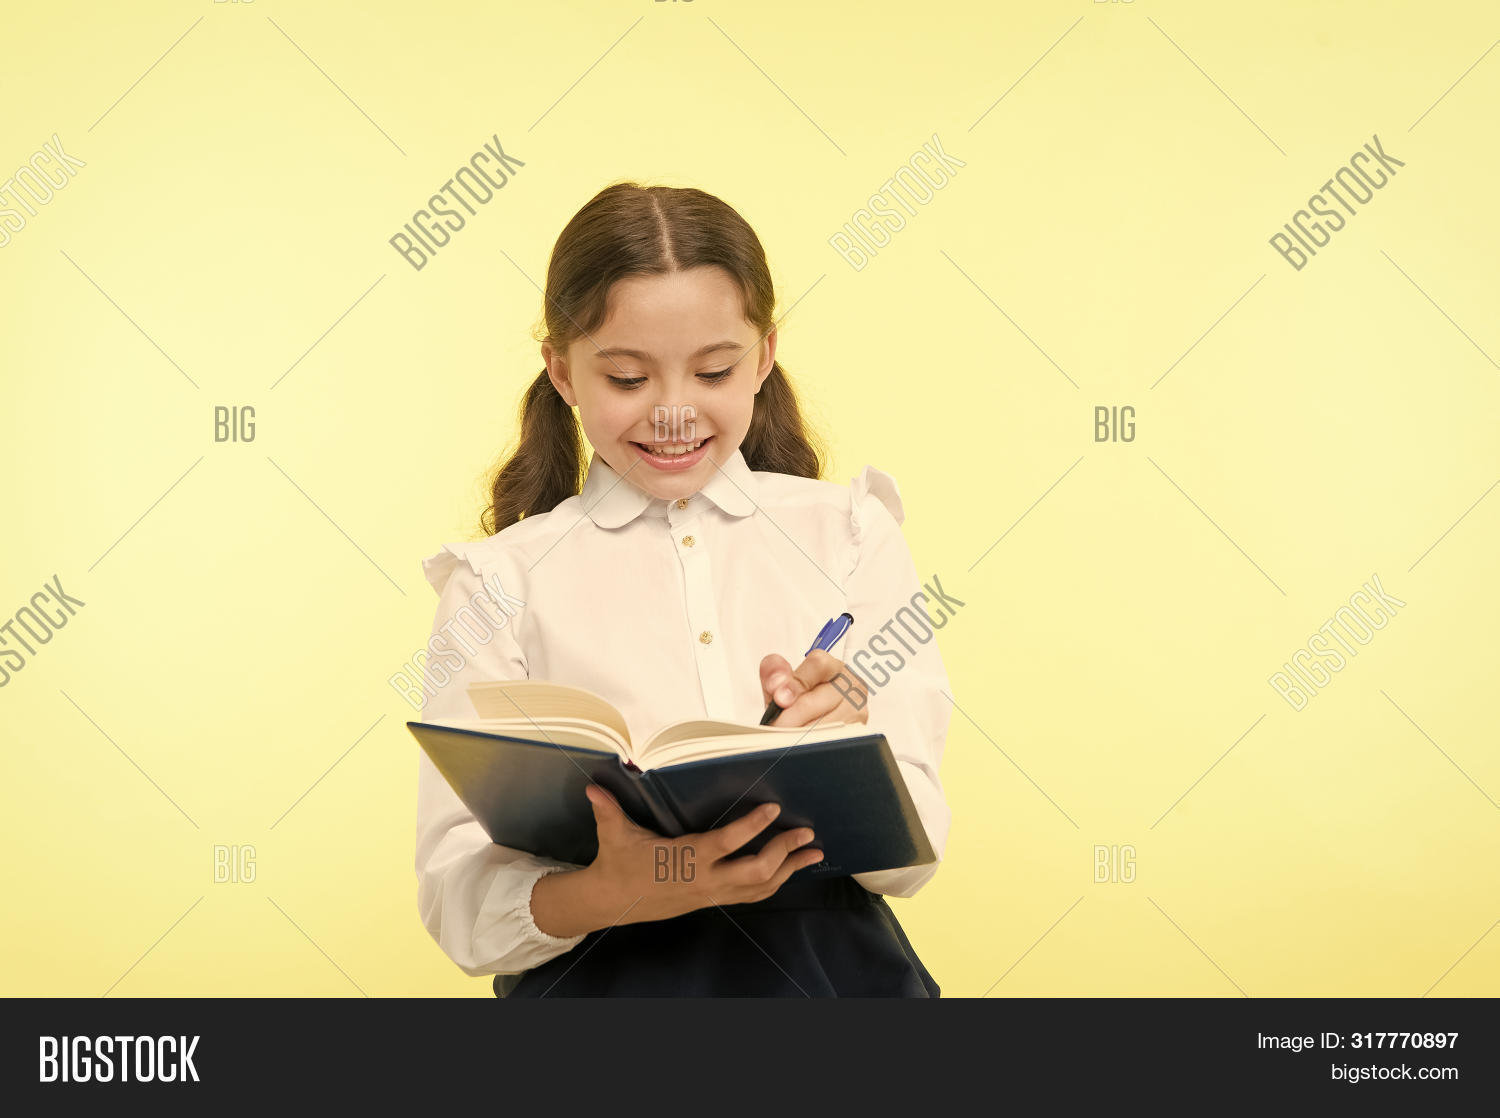 adorable,back,background,book,care,check,child,childhood,clothes,concept,create,cute,diligent,doing,down,education,essay,girl,hair,hold,homework,idea,important,kid,know,knowledge,lesson,little,long,look,making,notes,notice,pen,personal,remember,schedule,school,september,small,smart,style,stylish,task,uniform,write